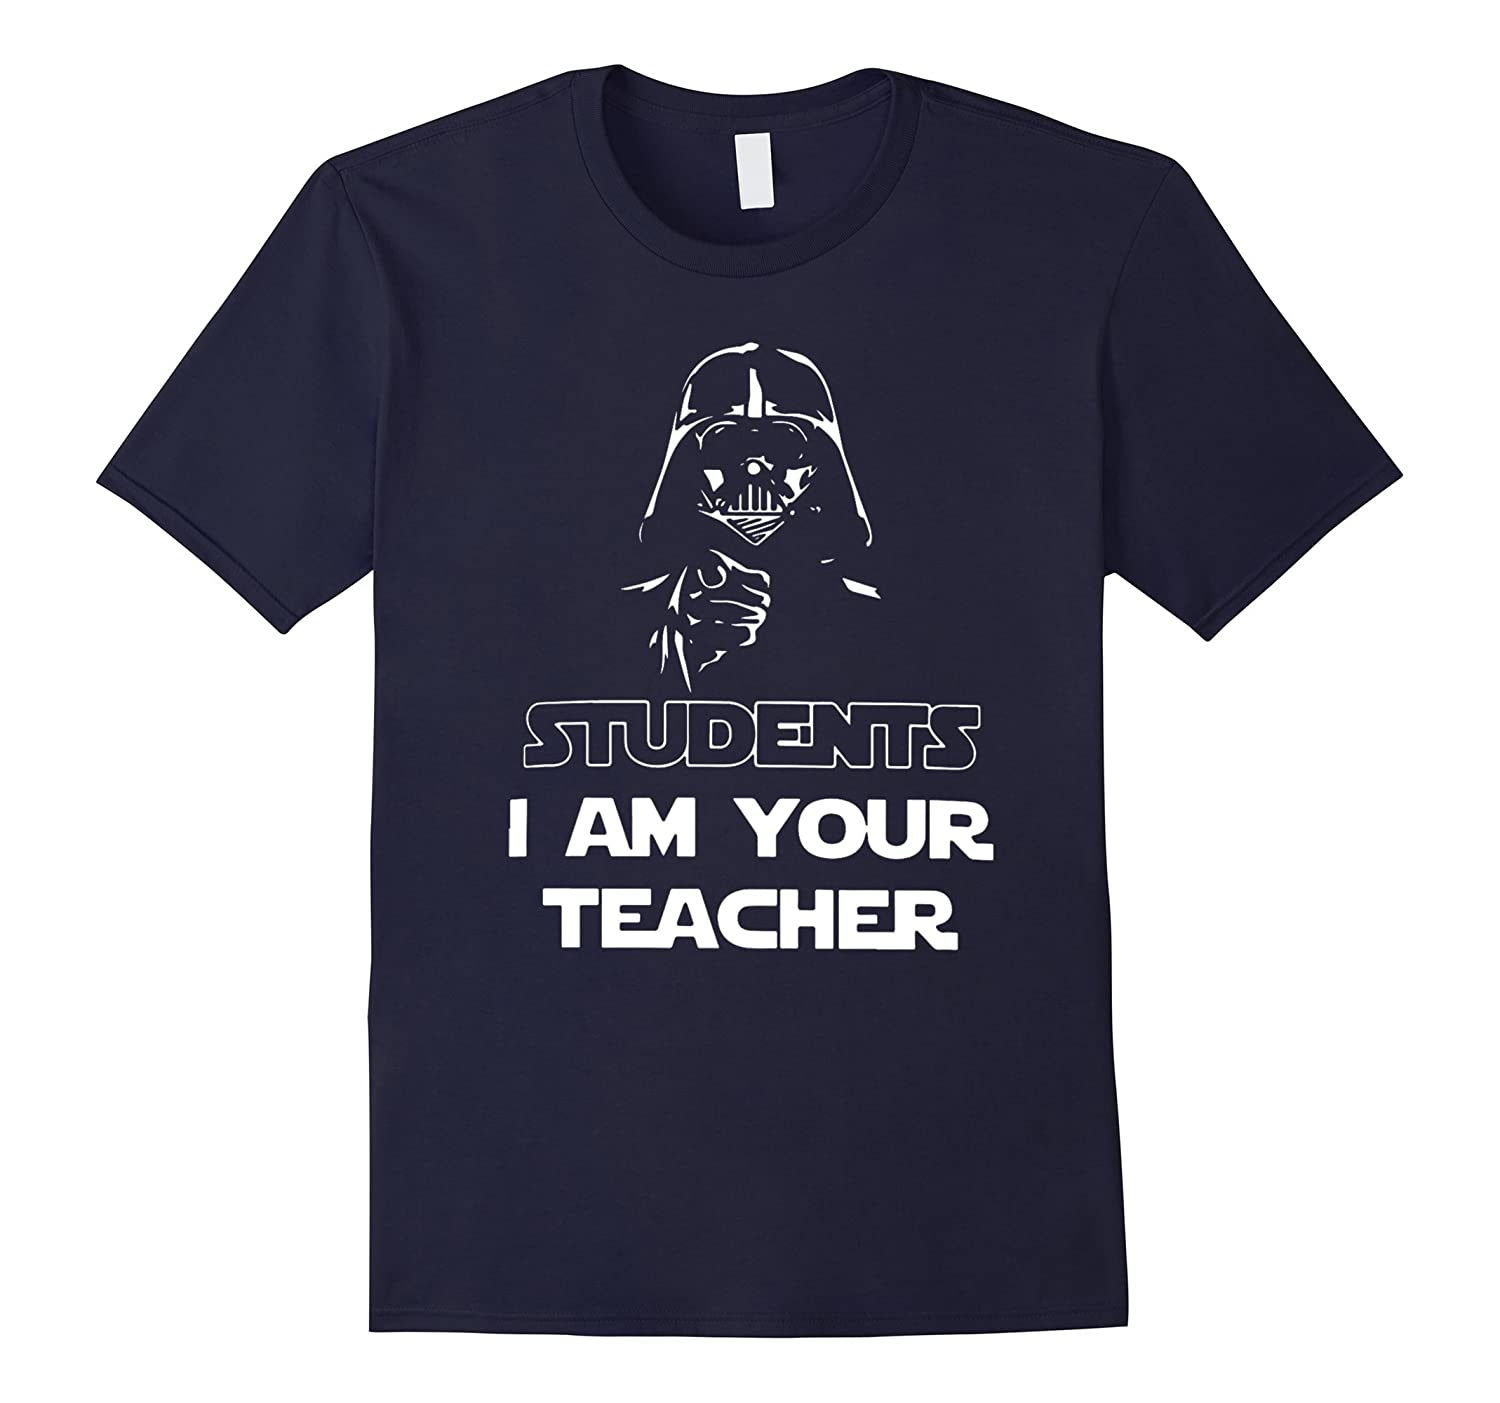 Students, I am your teacher funny graphic t-shirts-BN